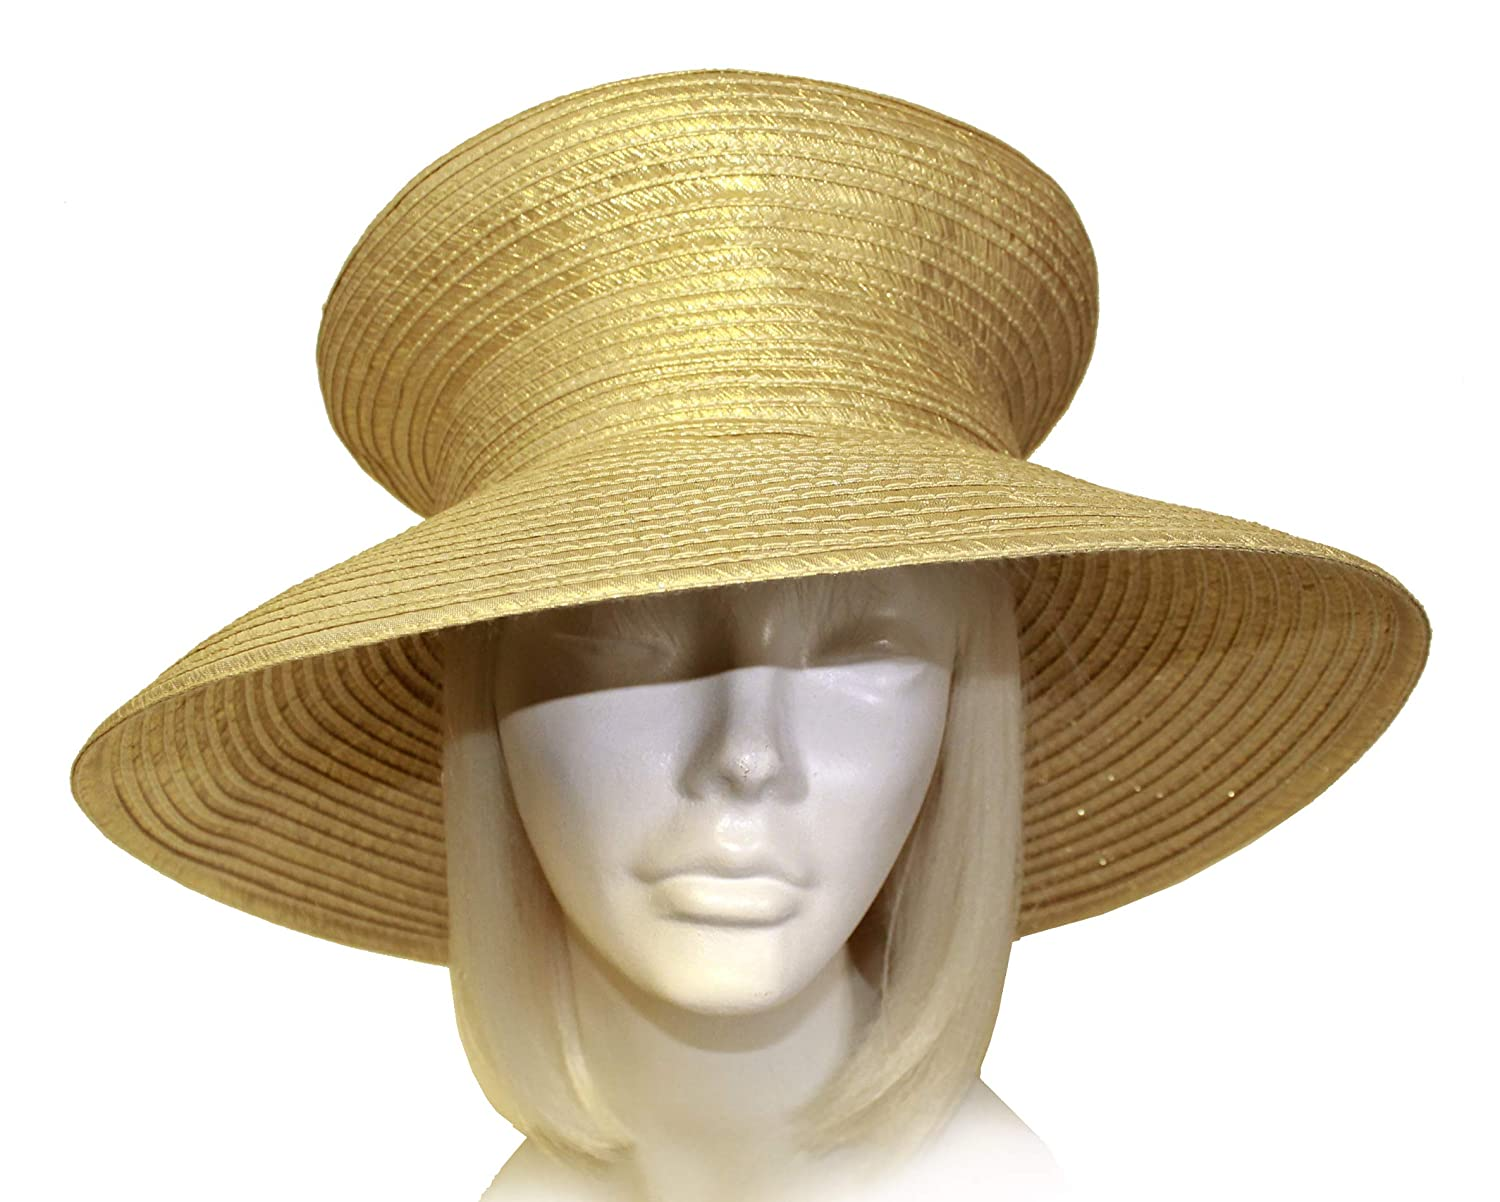 Song Millinery Satin-CRIN Stovetop Crown Wide Brim Hat Body Mr UNTRIMMED HAT ONLY 301